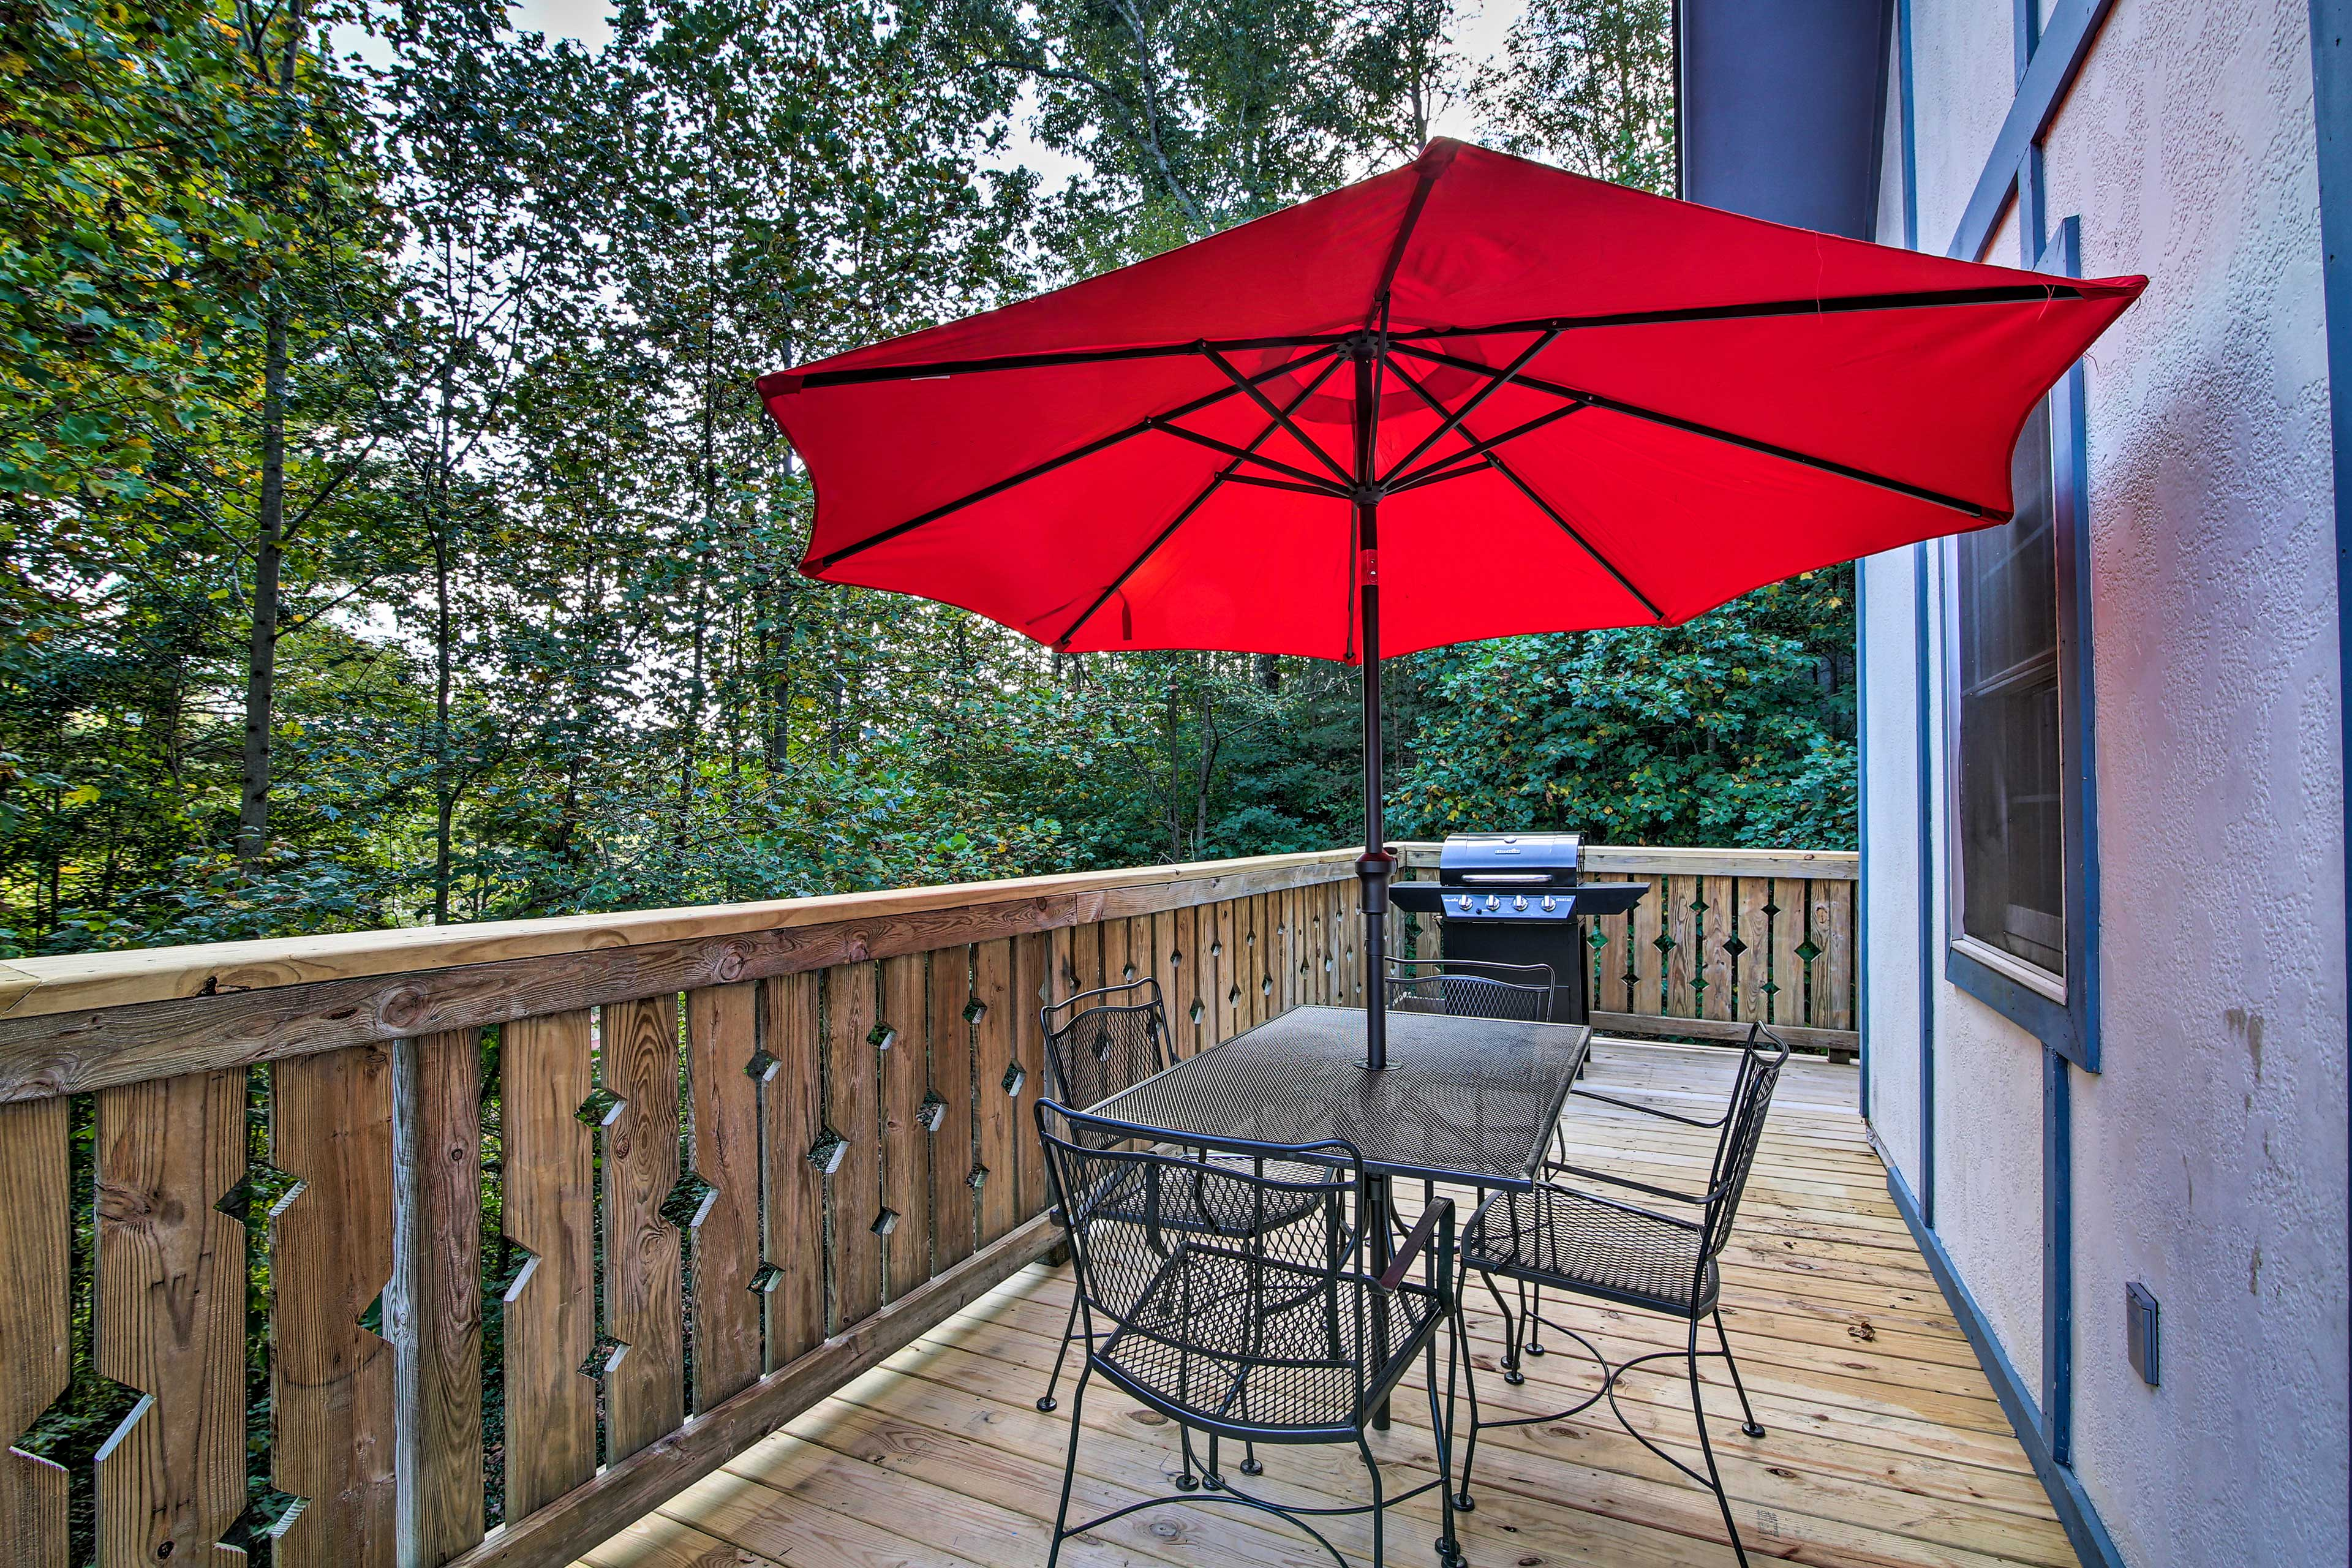 The deck includes a covered dining table.